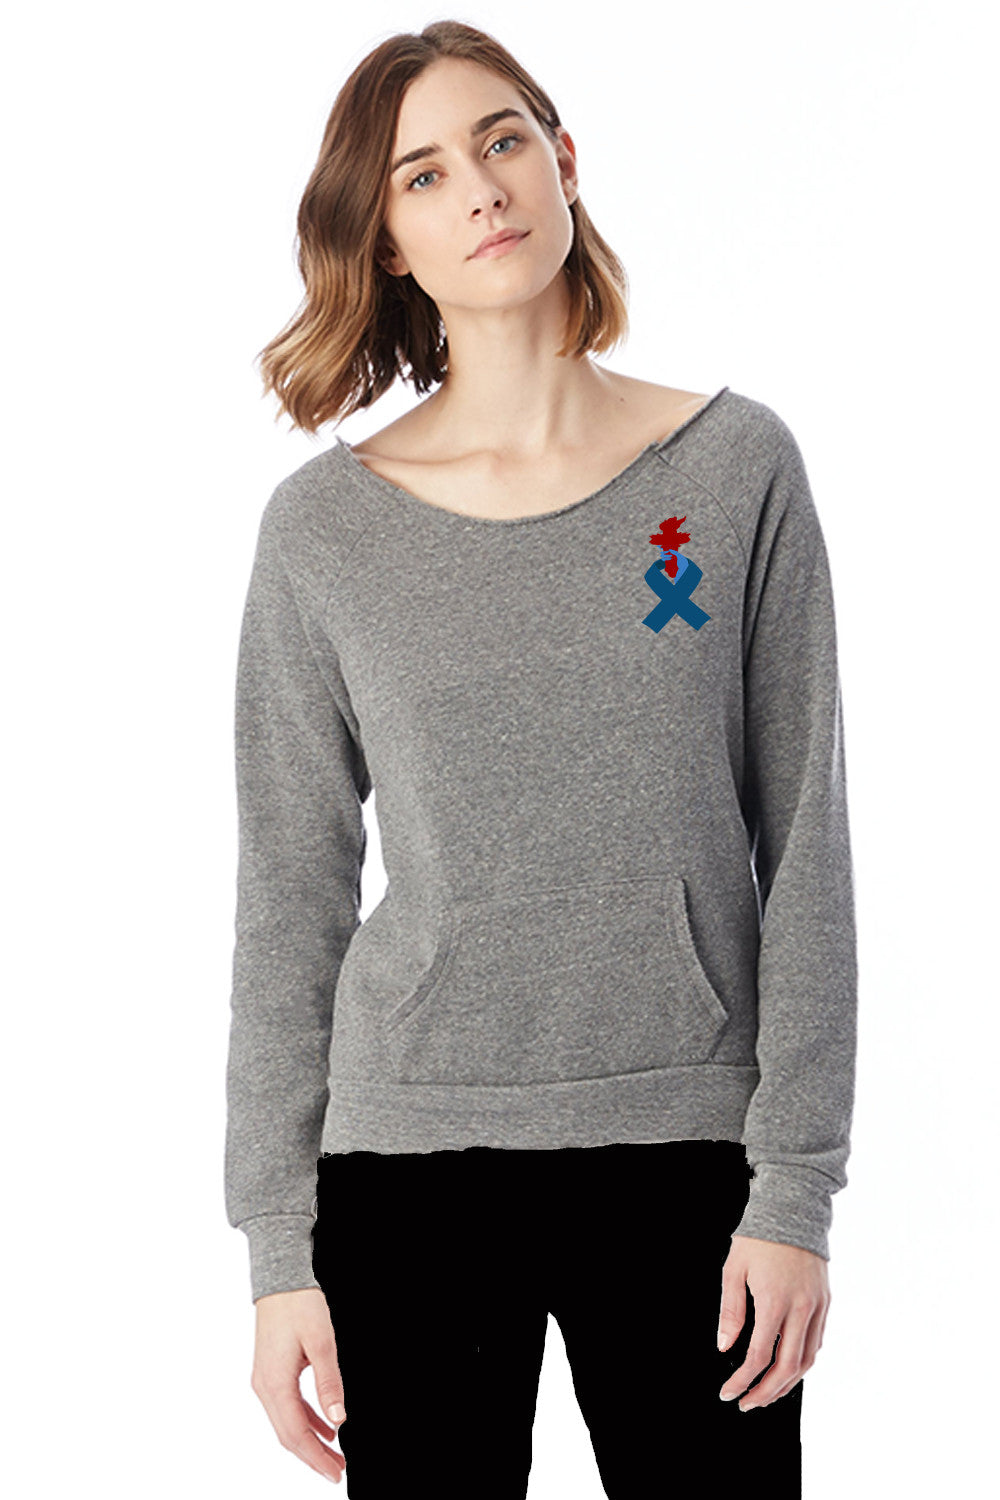 Liberty & Justice Women's Recycled and Organic Cotton Off the Shoulder Fleece ACLU Torch Ribbon